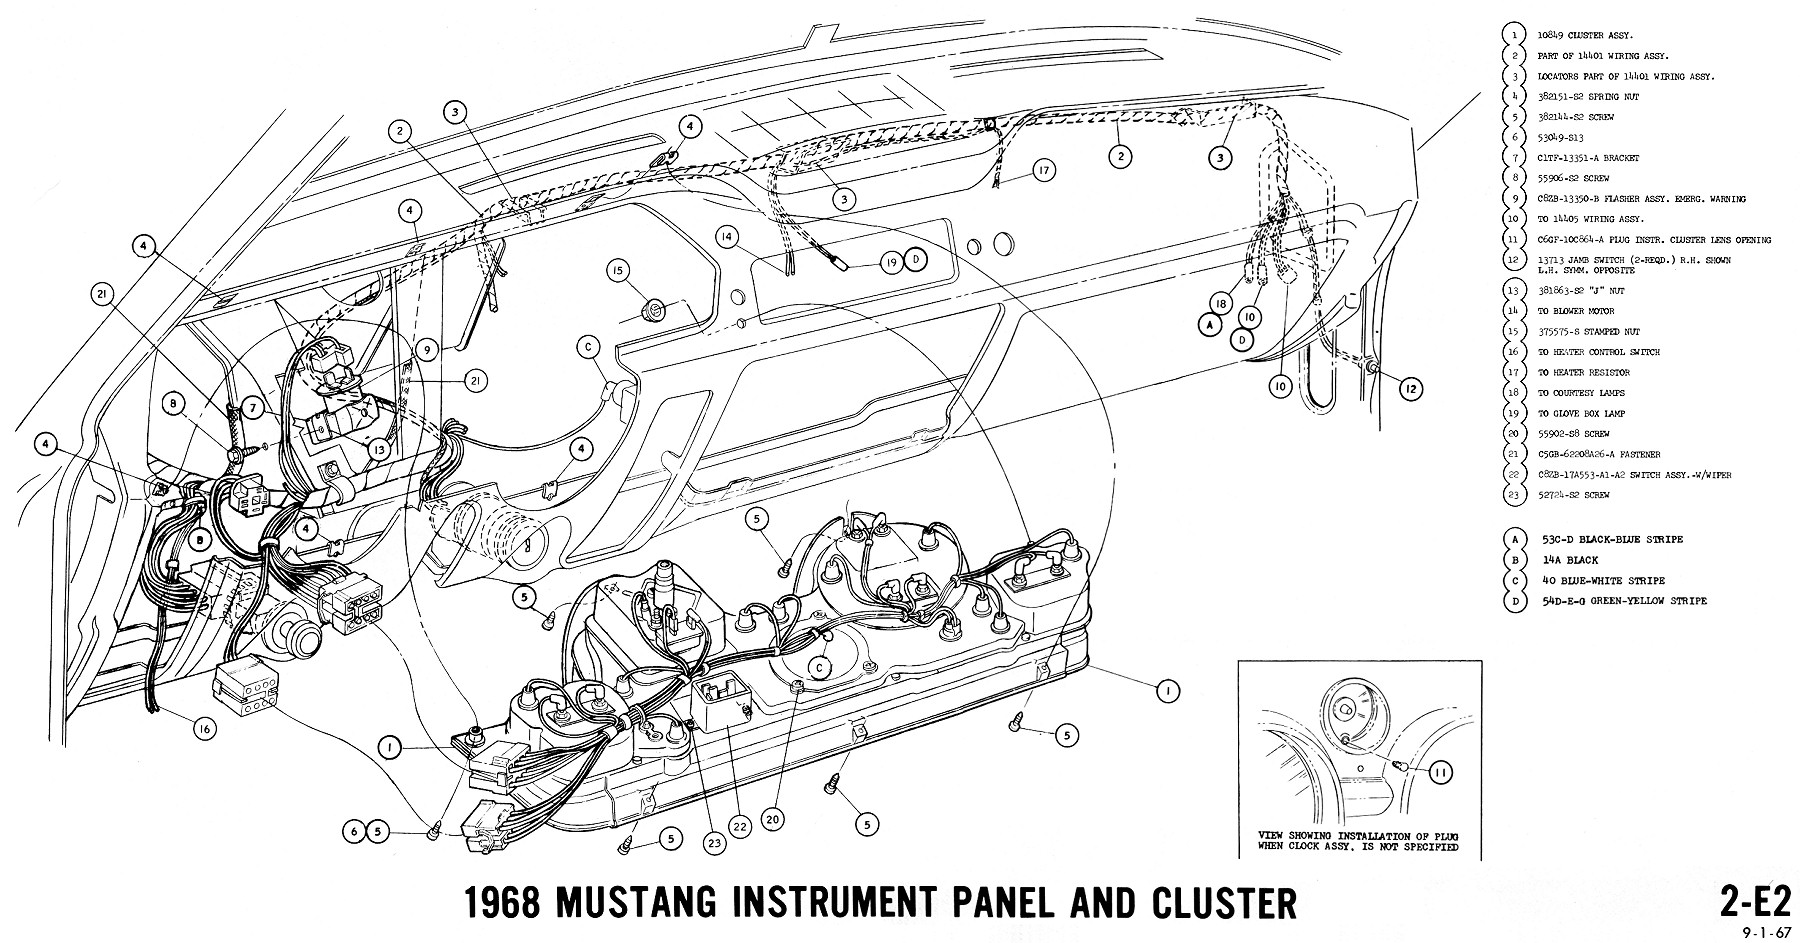 1968 Mustang Wiring Diagram Vacuum Schematics further Crank Sensor Location 68932 together with 2000 Ford F350 Superduty Under Dash Fuse Panel Diagram additionally Kia Rio Radio Wiring Diagram also 2r8pr 99 Ford Ranger 3 0 Xlt Running Park Lights. on ford transit connect 2010 fuse box diagram